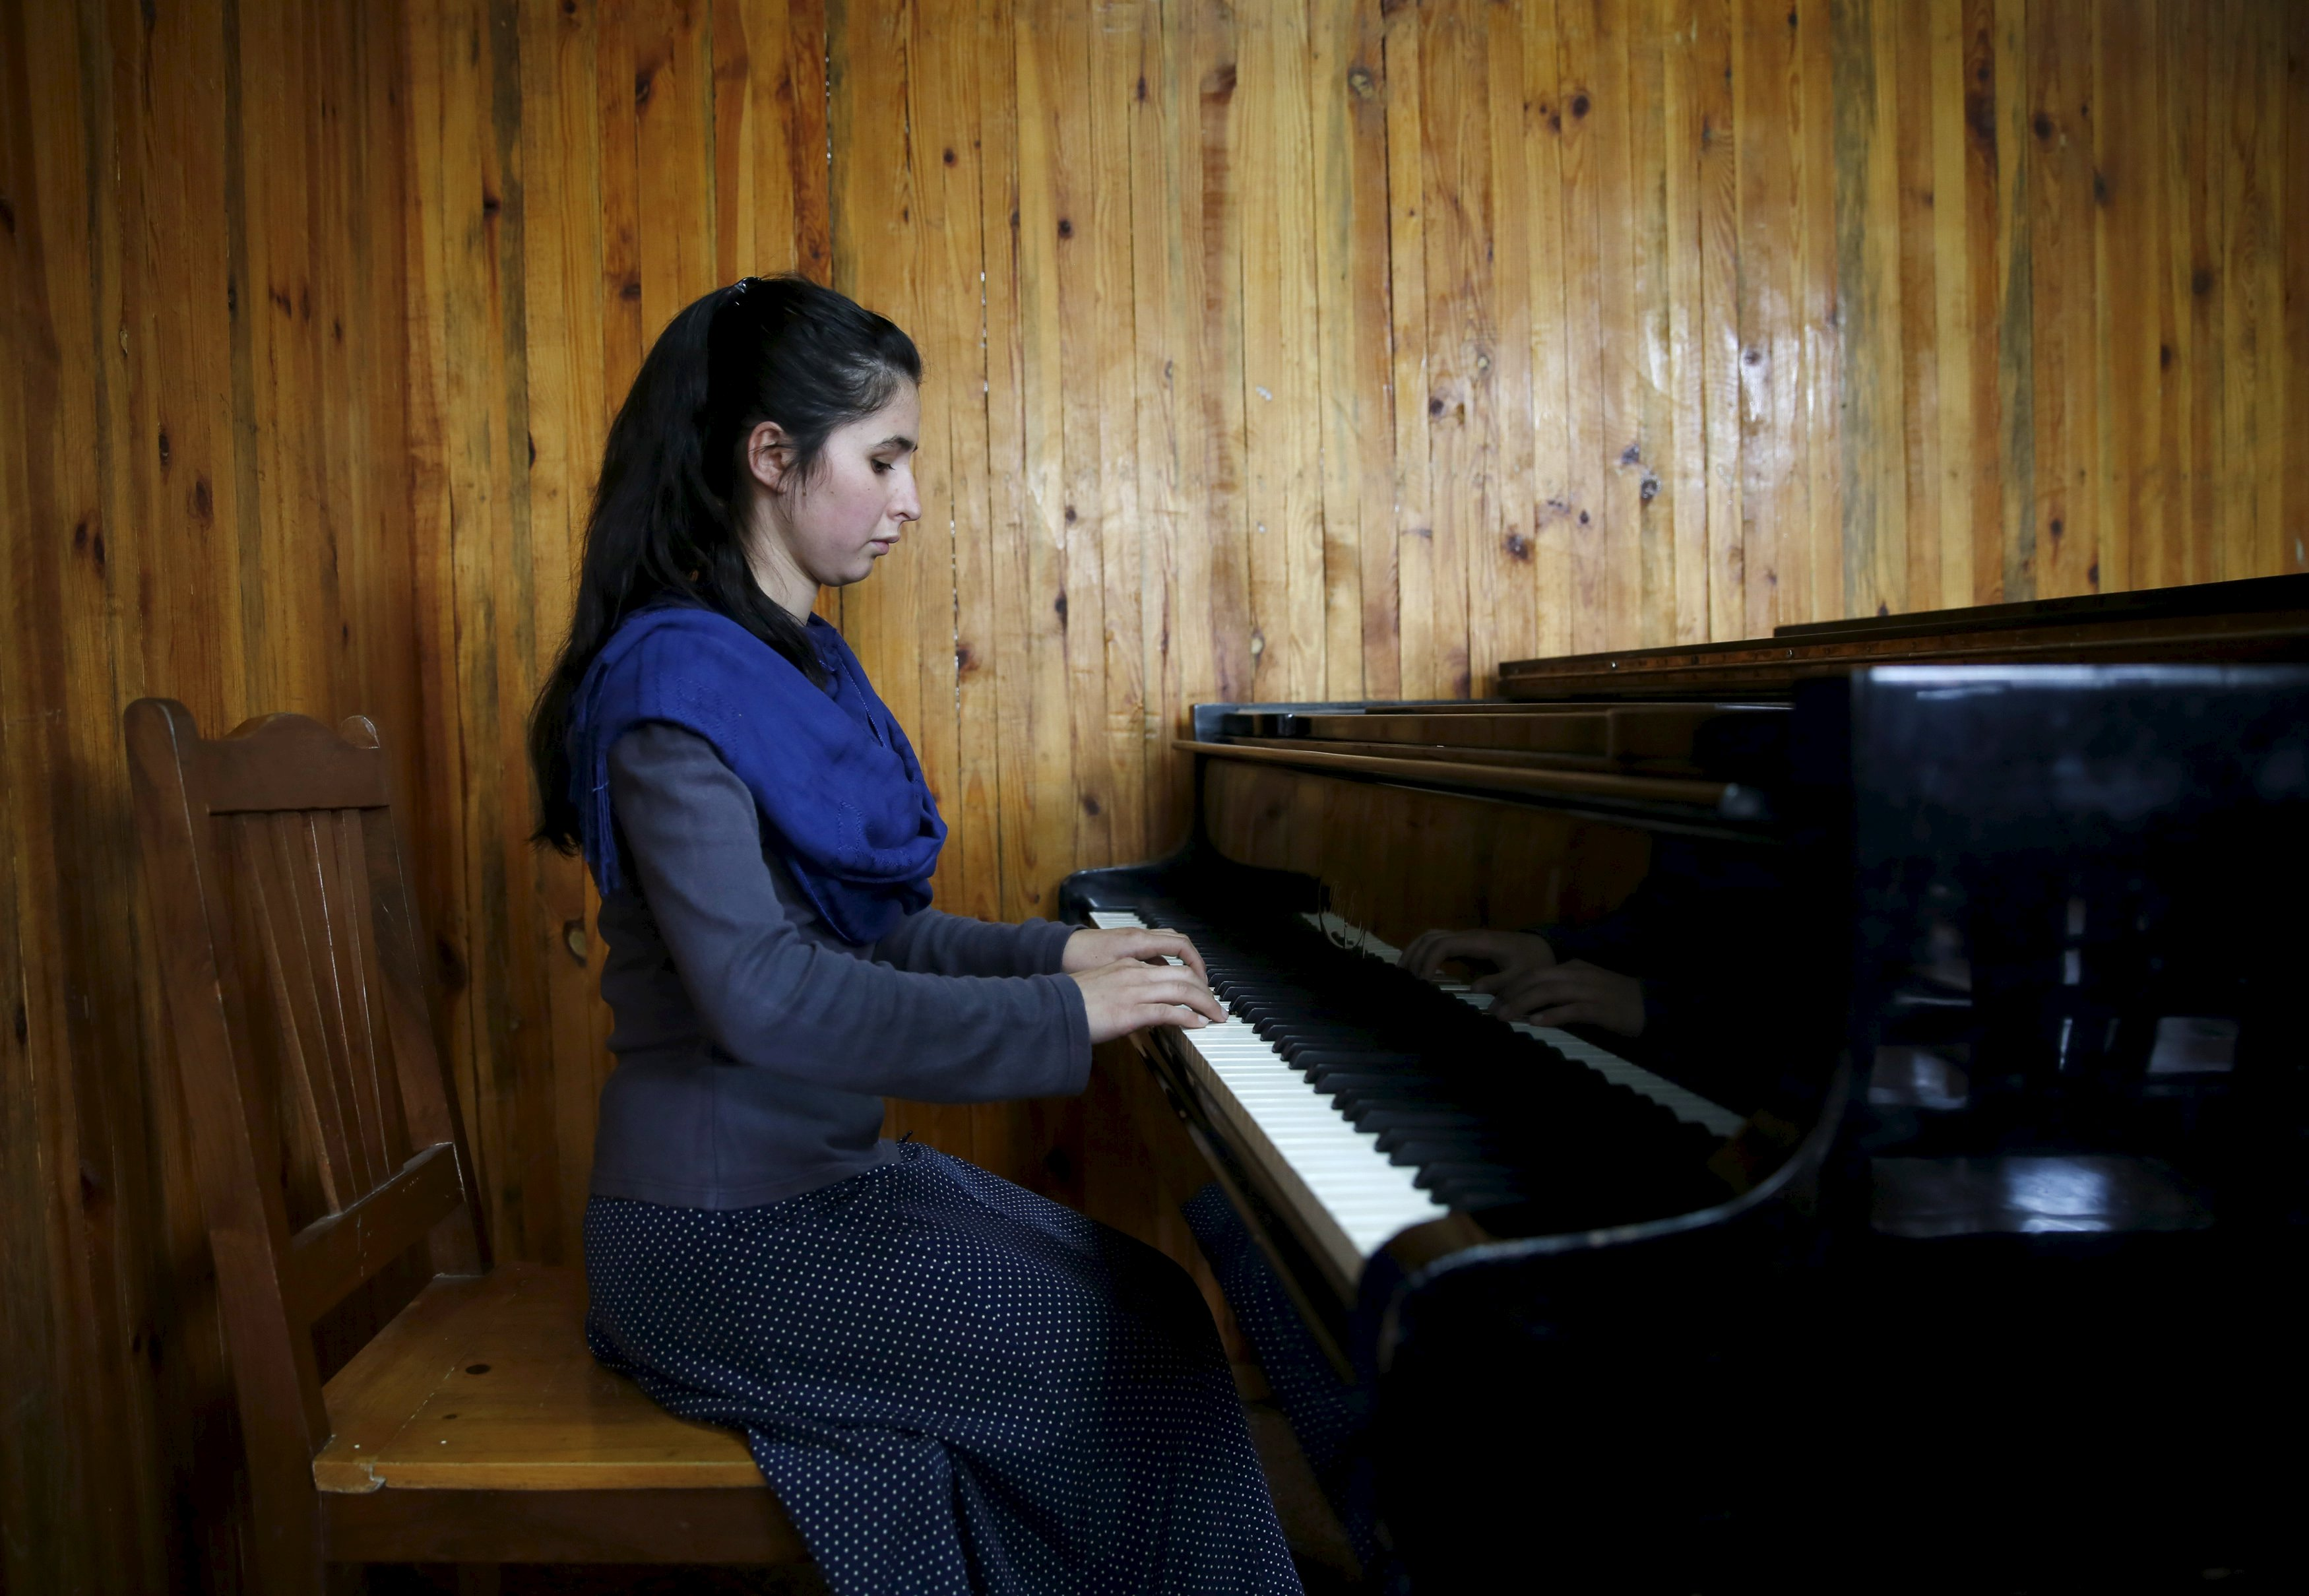 """Negin Ekhpulwak, leader of the Zohra orchestra, an ensemble of 35 women, practises on a piano at Afghanistan's National Institute of Music, in Kabul, Afghanistan April 9, 2016. Playing instruments was banned under Taliban rule in Afghanistan, and even today, many conservative Muslims frown on most forms of music. Living in an orphanage in the capital, Kabul, 19-year-old Negin leads an ensemble of 35 women that plays both Western and Afghan musical instruments. In a country notorious internationally for harsh restrictions on women in most areas of life, Negin's story highlights a double challenge. REUTERS/Ahmad Masood SEARCH """"ORCHESTRA KABUL"""" FOR THIS STORY. SEARCH """"THE WIDER IMAGE"""" FOR ALL STORIES TPX IMAGES OF THE DAY"""